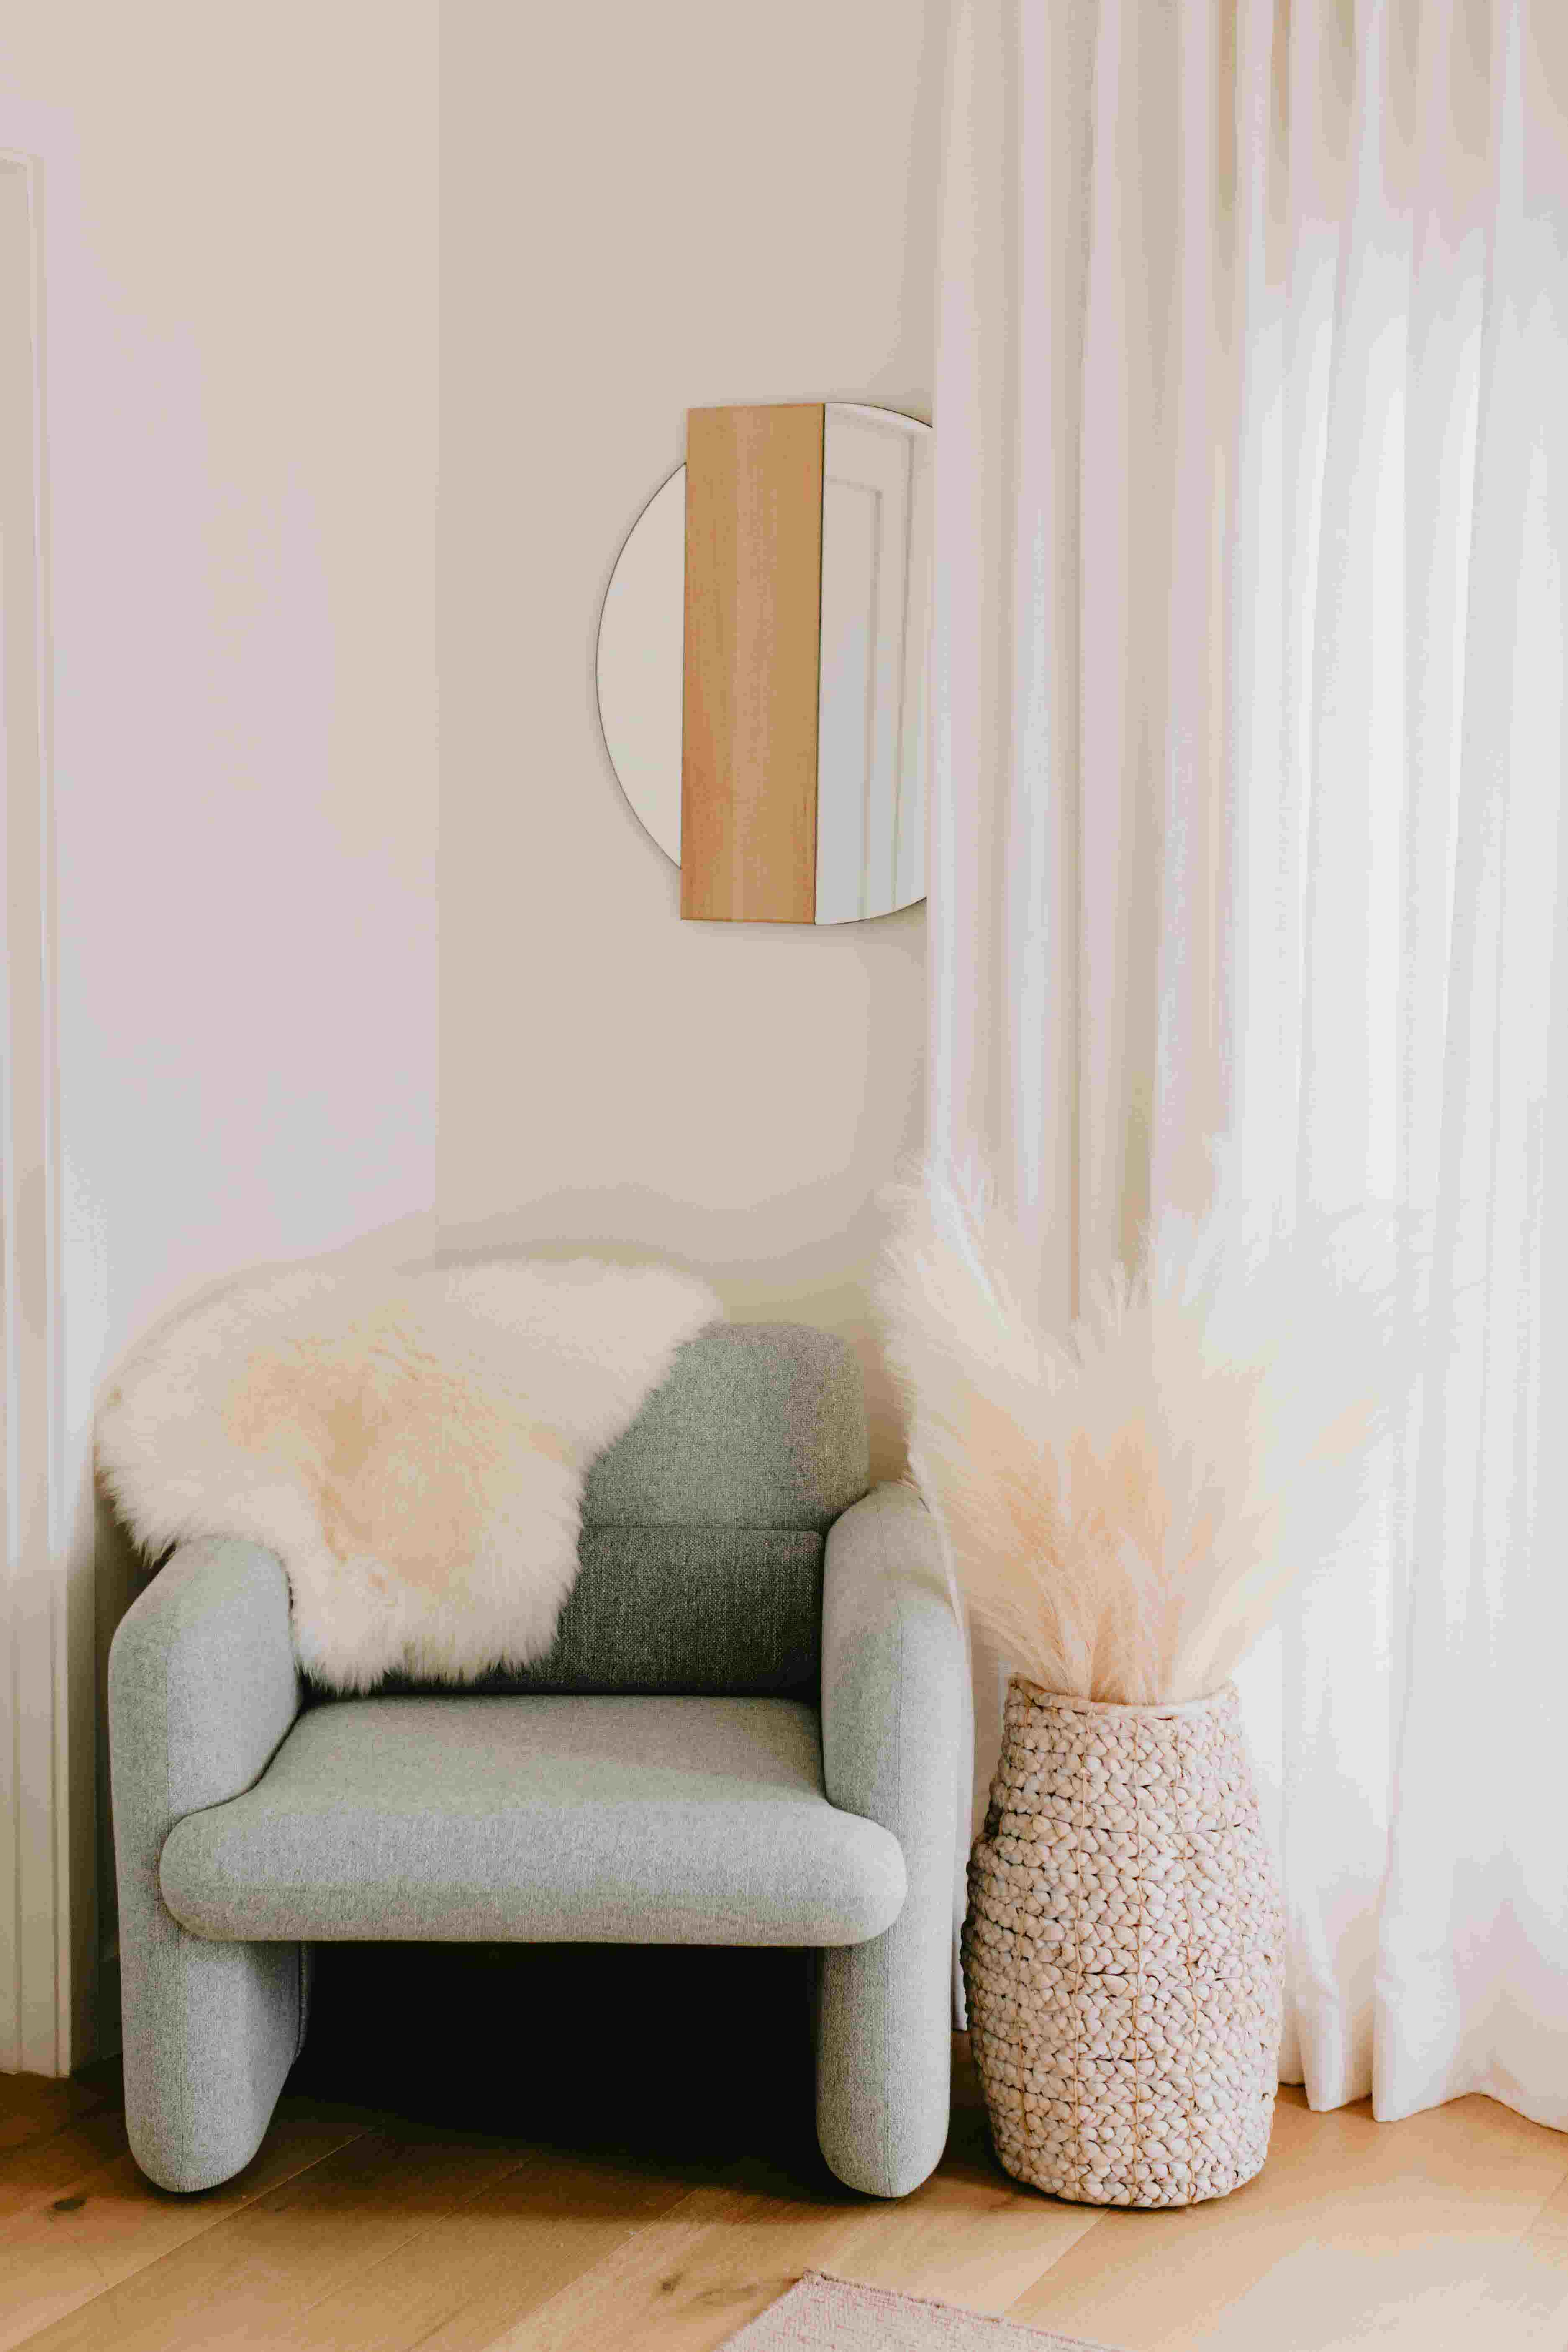 An Industry West Plume Chair and mirror in Jaclyn Johnson's LA home